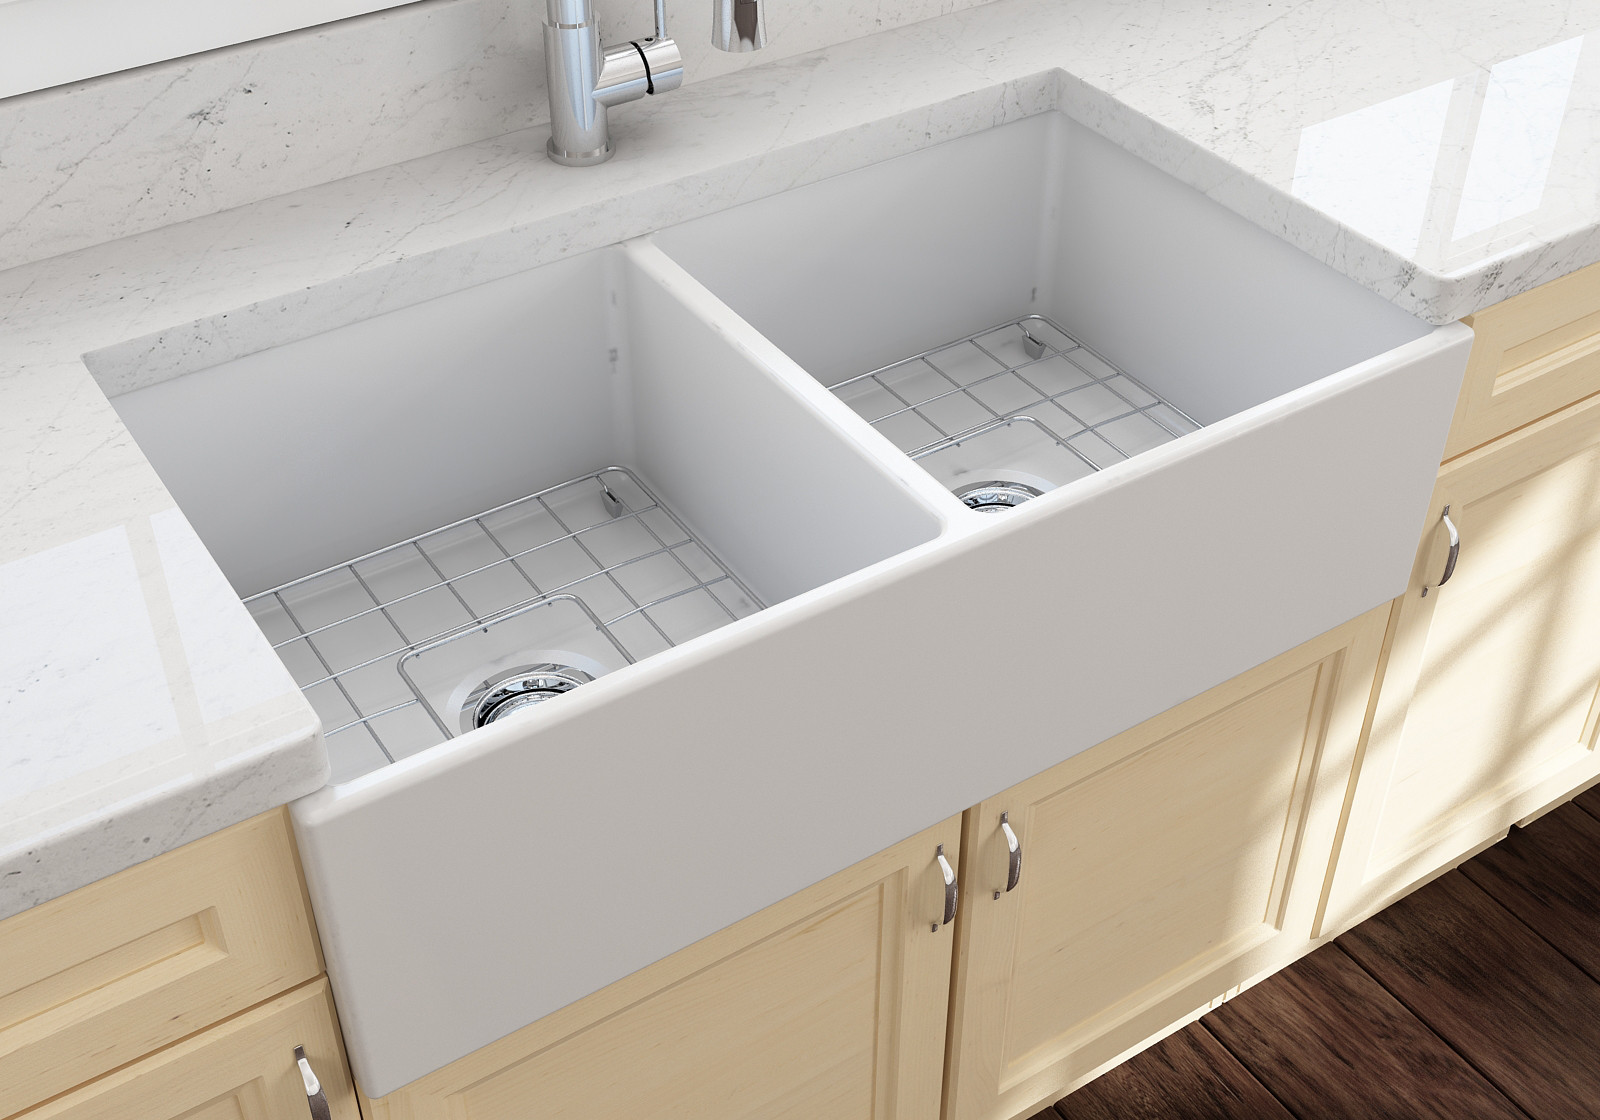 BOCCHI 1350-002-0120 Double Bowl Kitchen Sink With Grid In Matte White